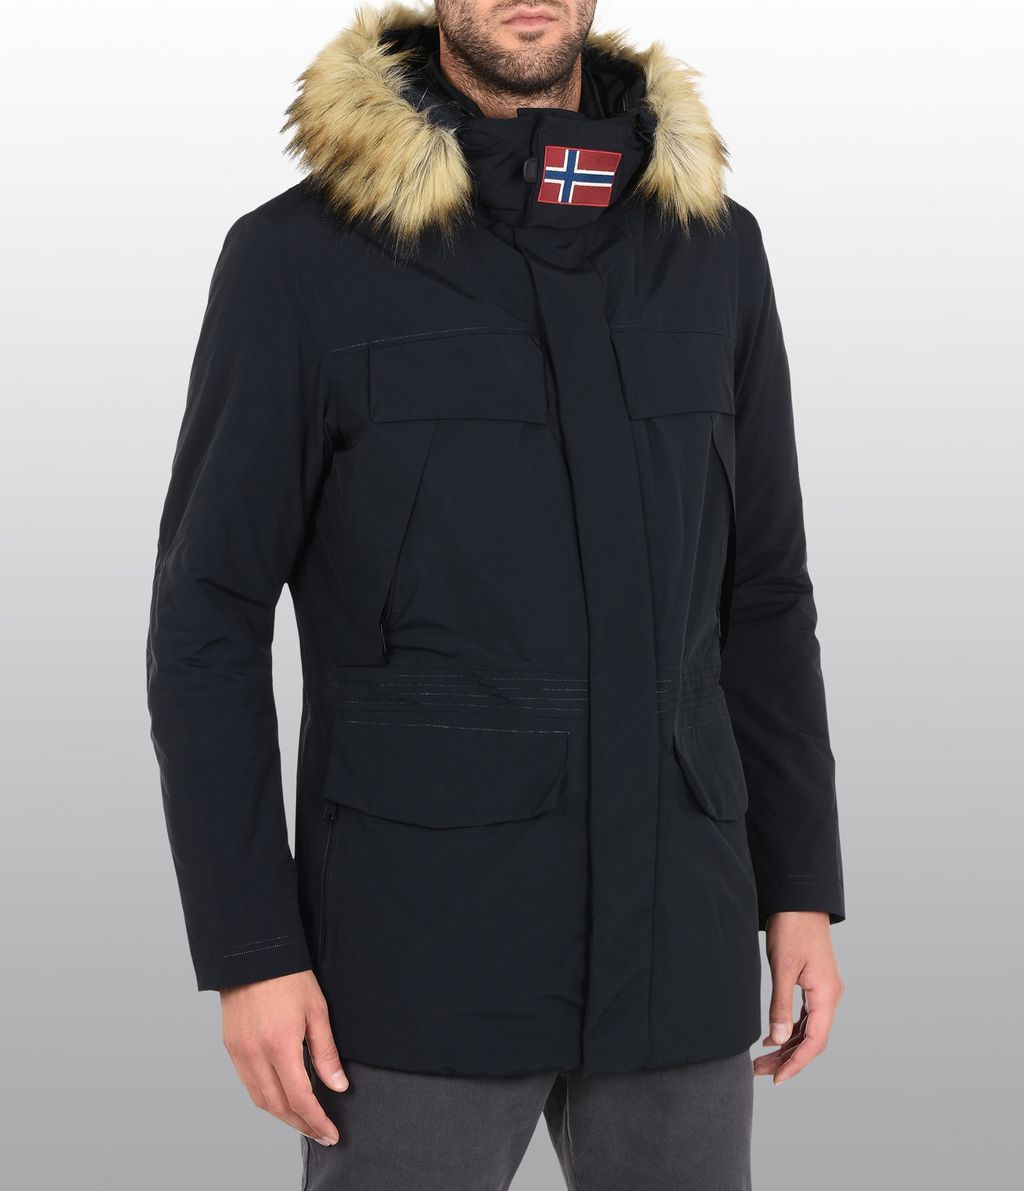 Napapijri jackets for men: winter coats, anoraks, parkas and more ...